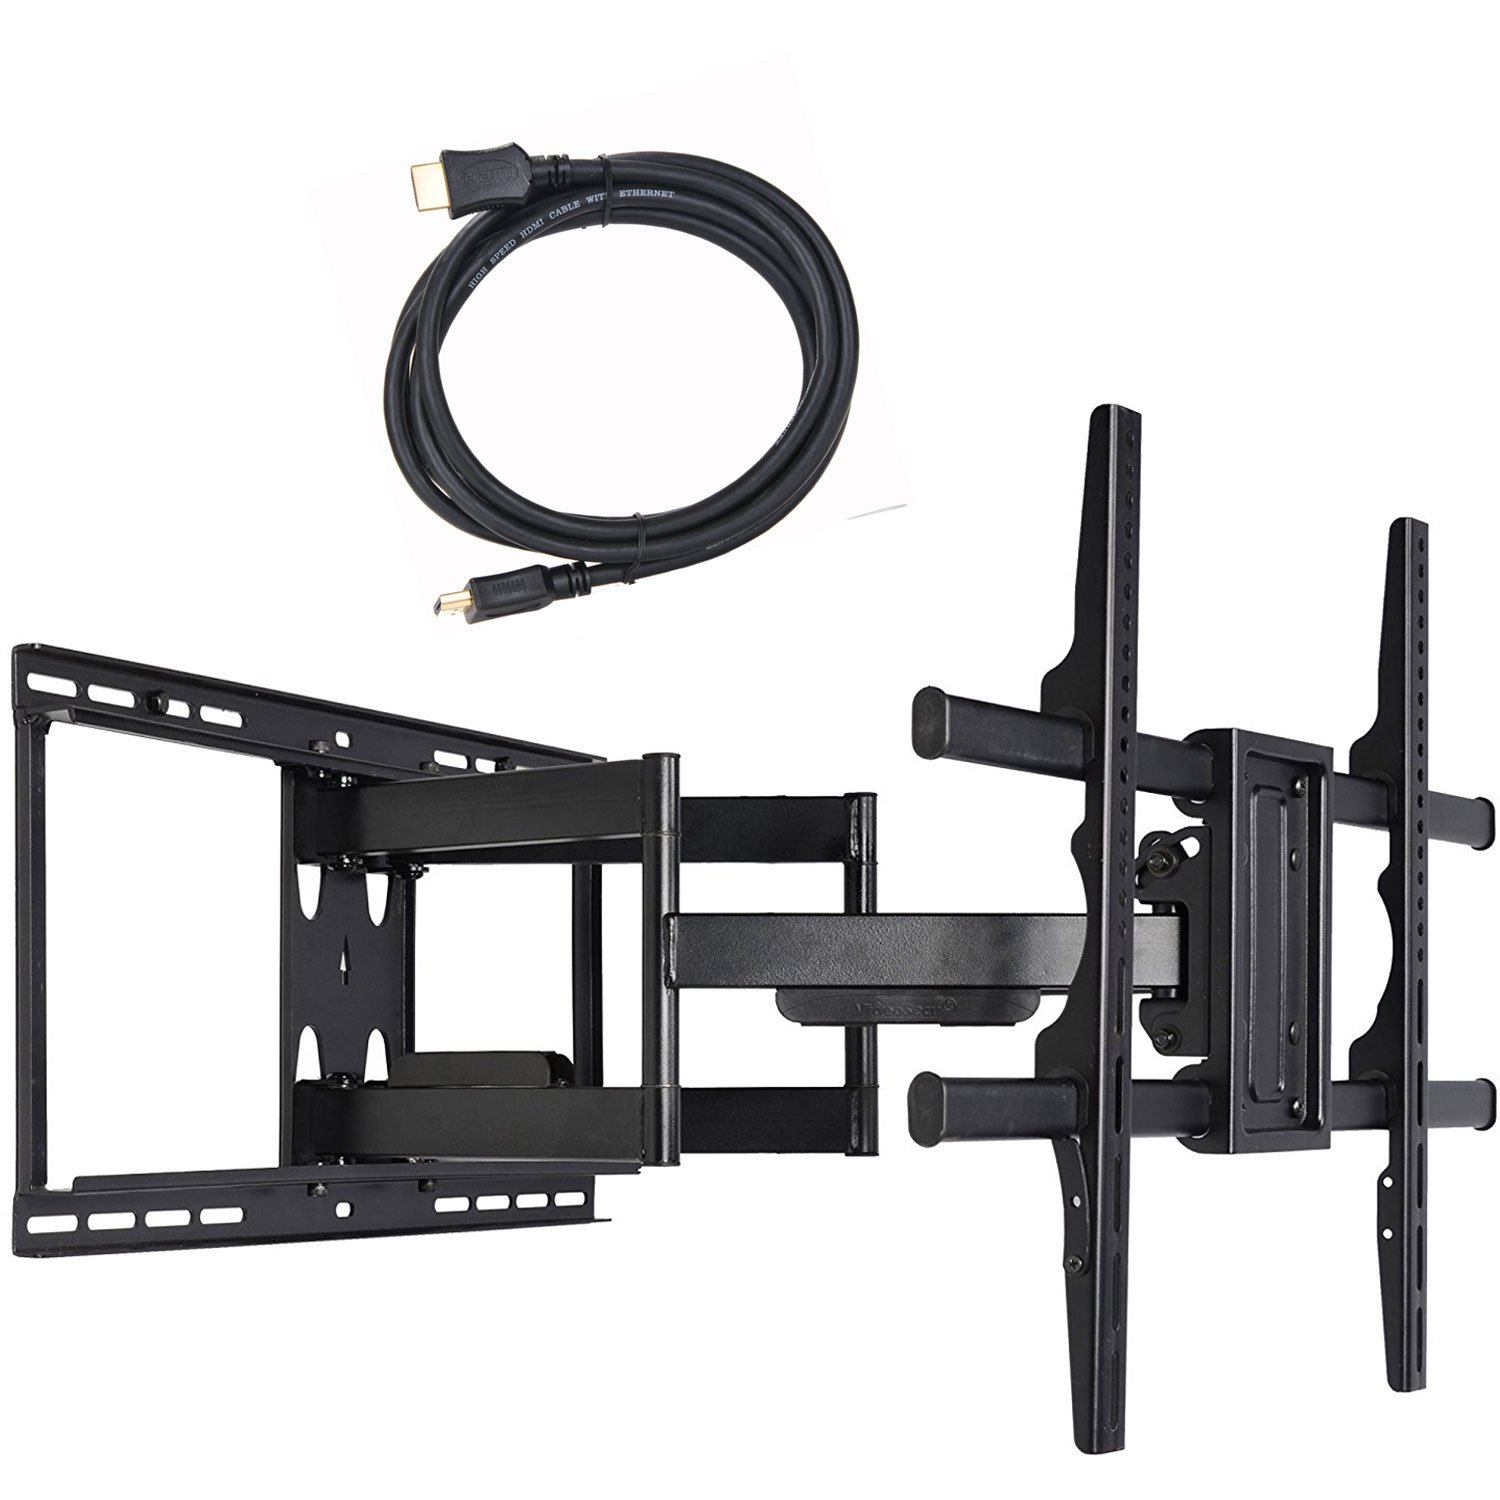 VideoSecu 24 inch Extension Full Motion Swivel Articulating TV Wall Mount Bracket for Most 40''-90'' LED LCD OLED Plasma Flat Screen TV with VESA 684x400,600x400,400x400,200x200mm MW480B BCL by VideoSecu